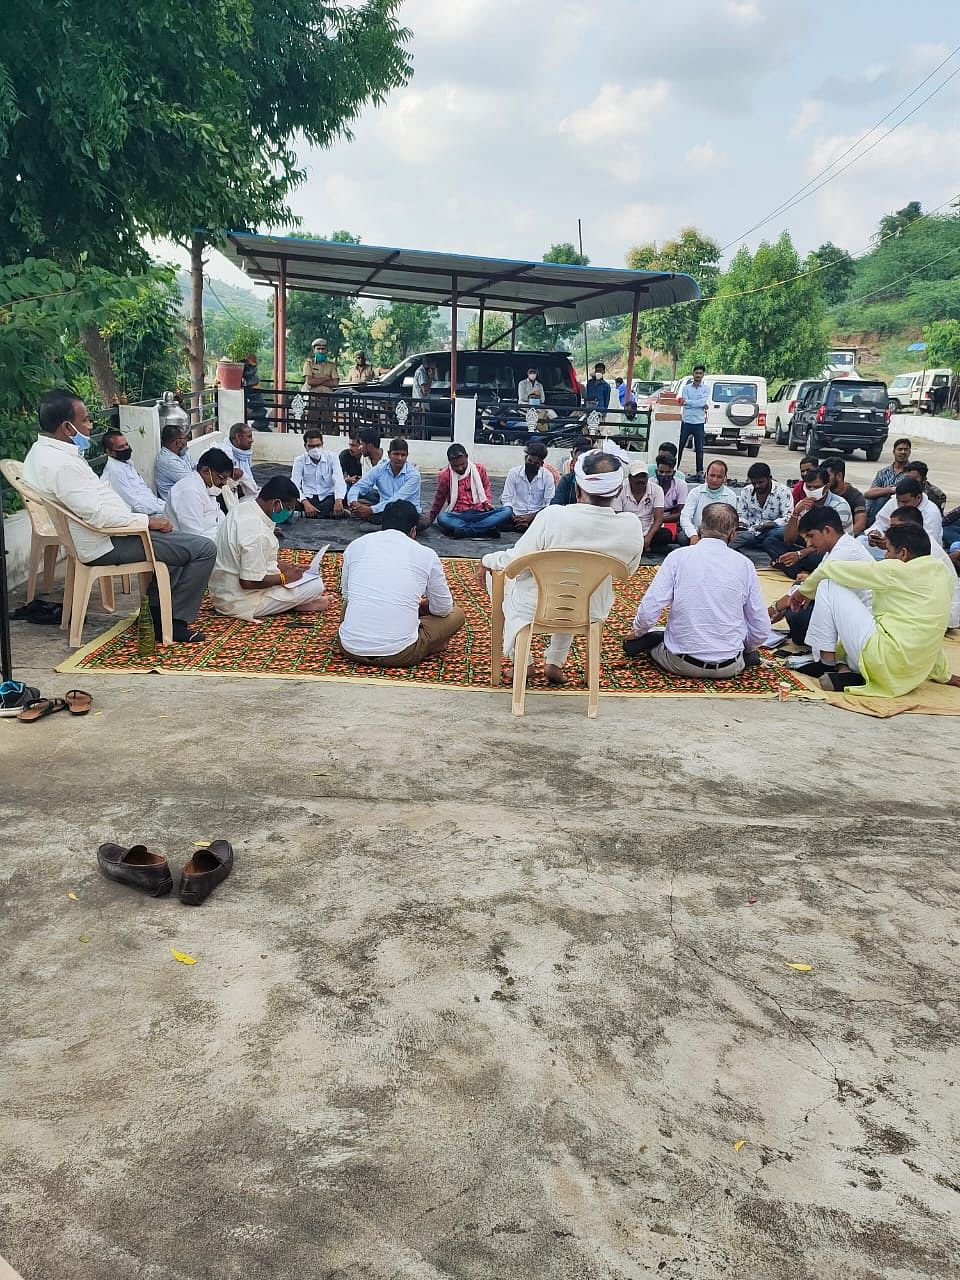 Peace committees have been formed by the administration to speak to the protesters but there has been no progress in getting them to discontinue the protests.